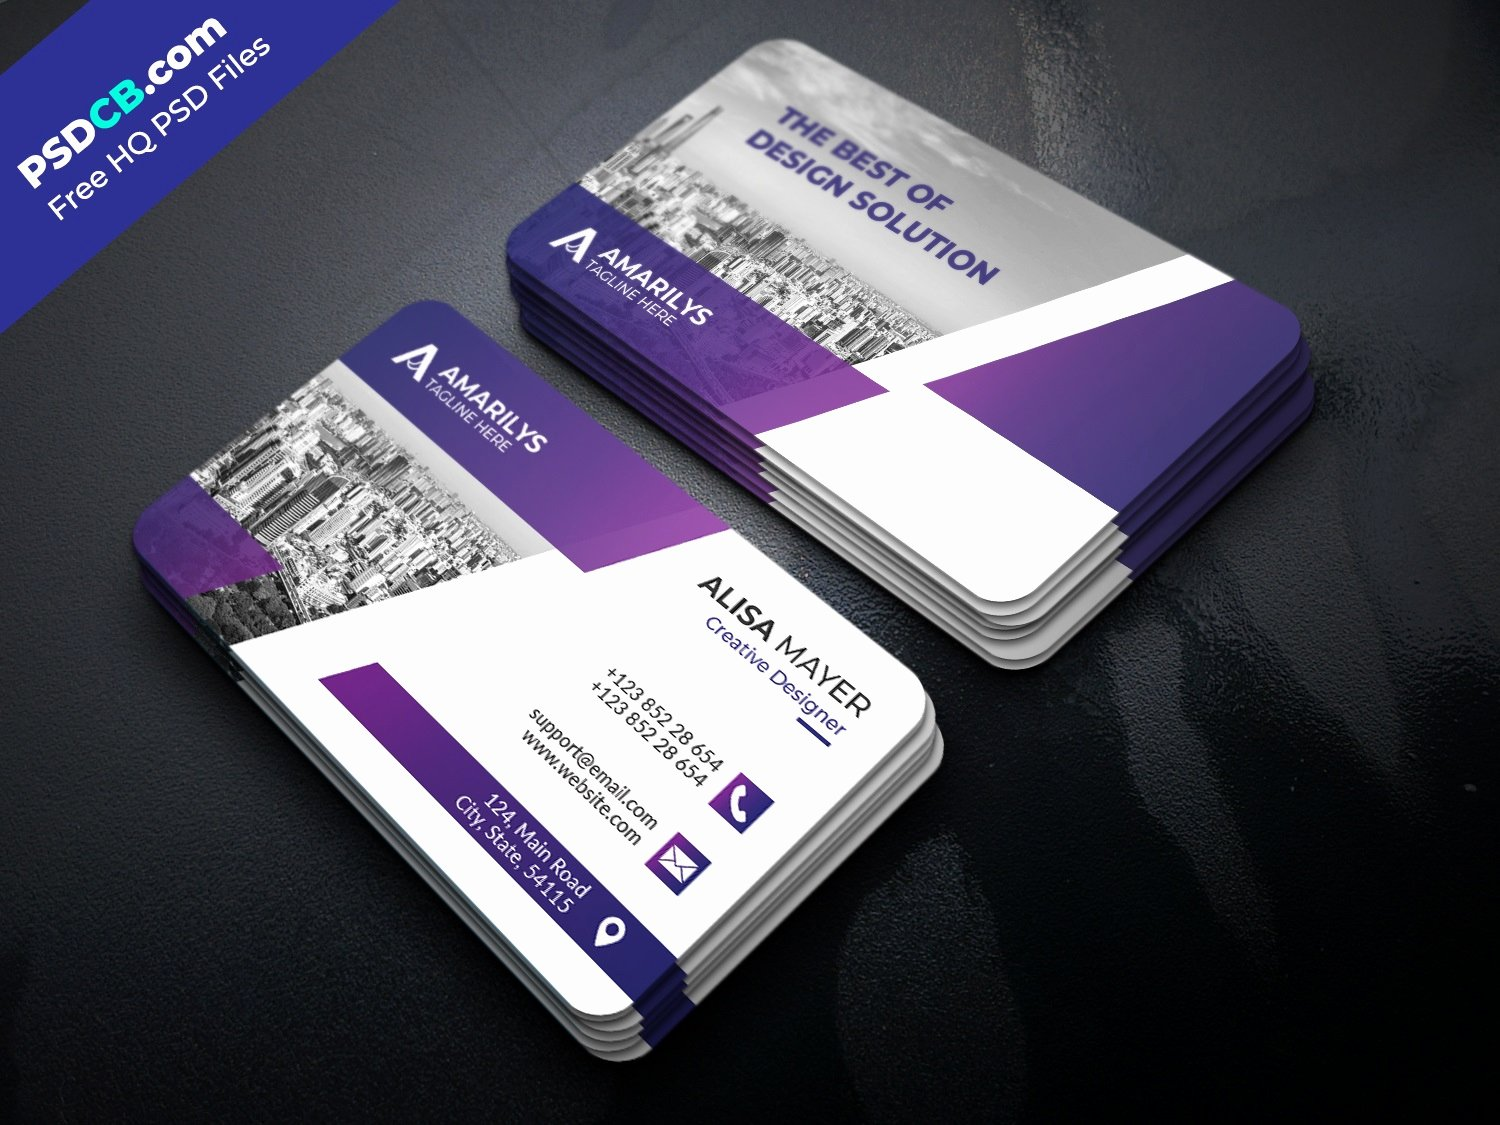 Rounded Business Card Template Awesome Modern Creative Business Card Template Design Psdcb